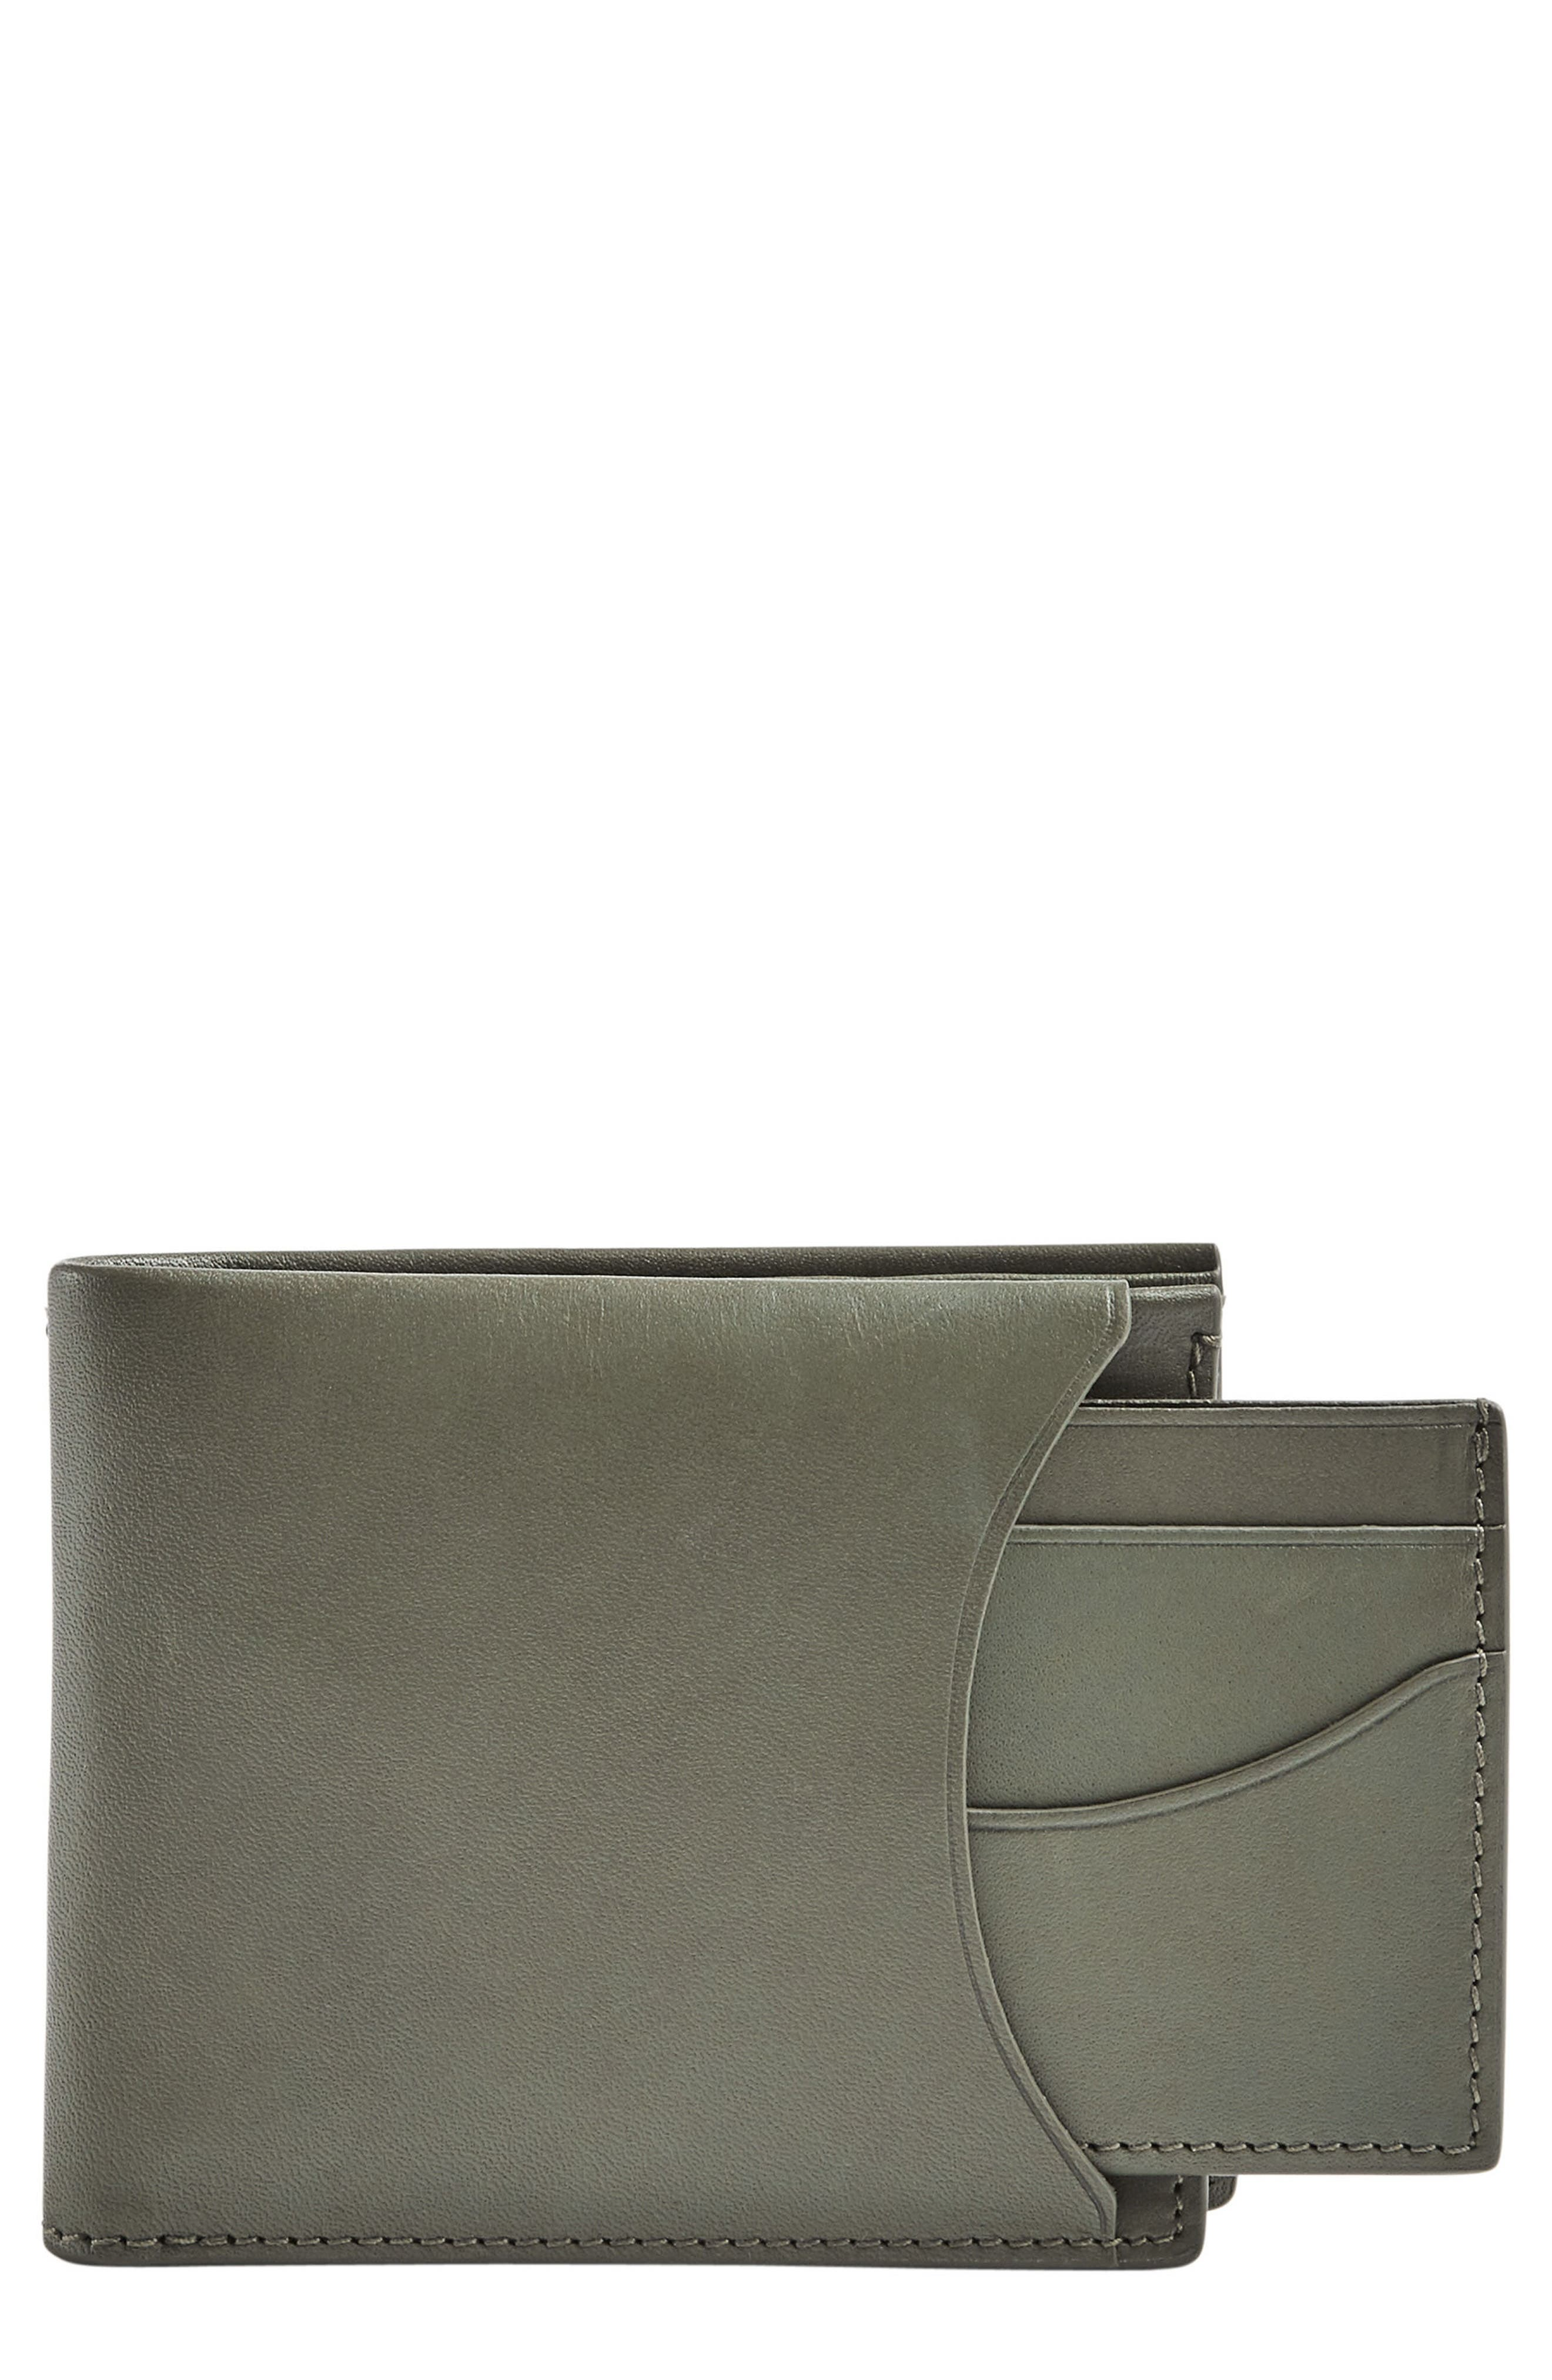 Main Image - Skagen Leather Passcase Wallet